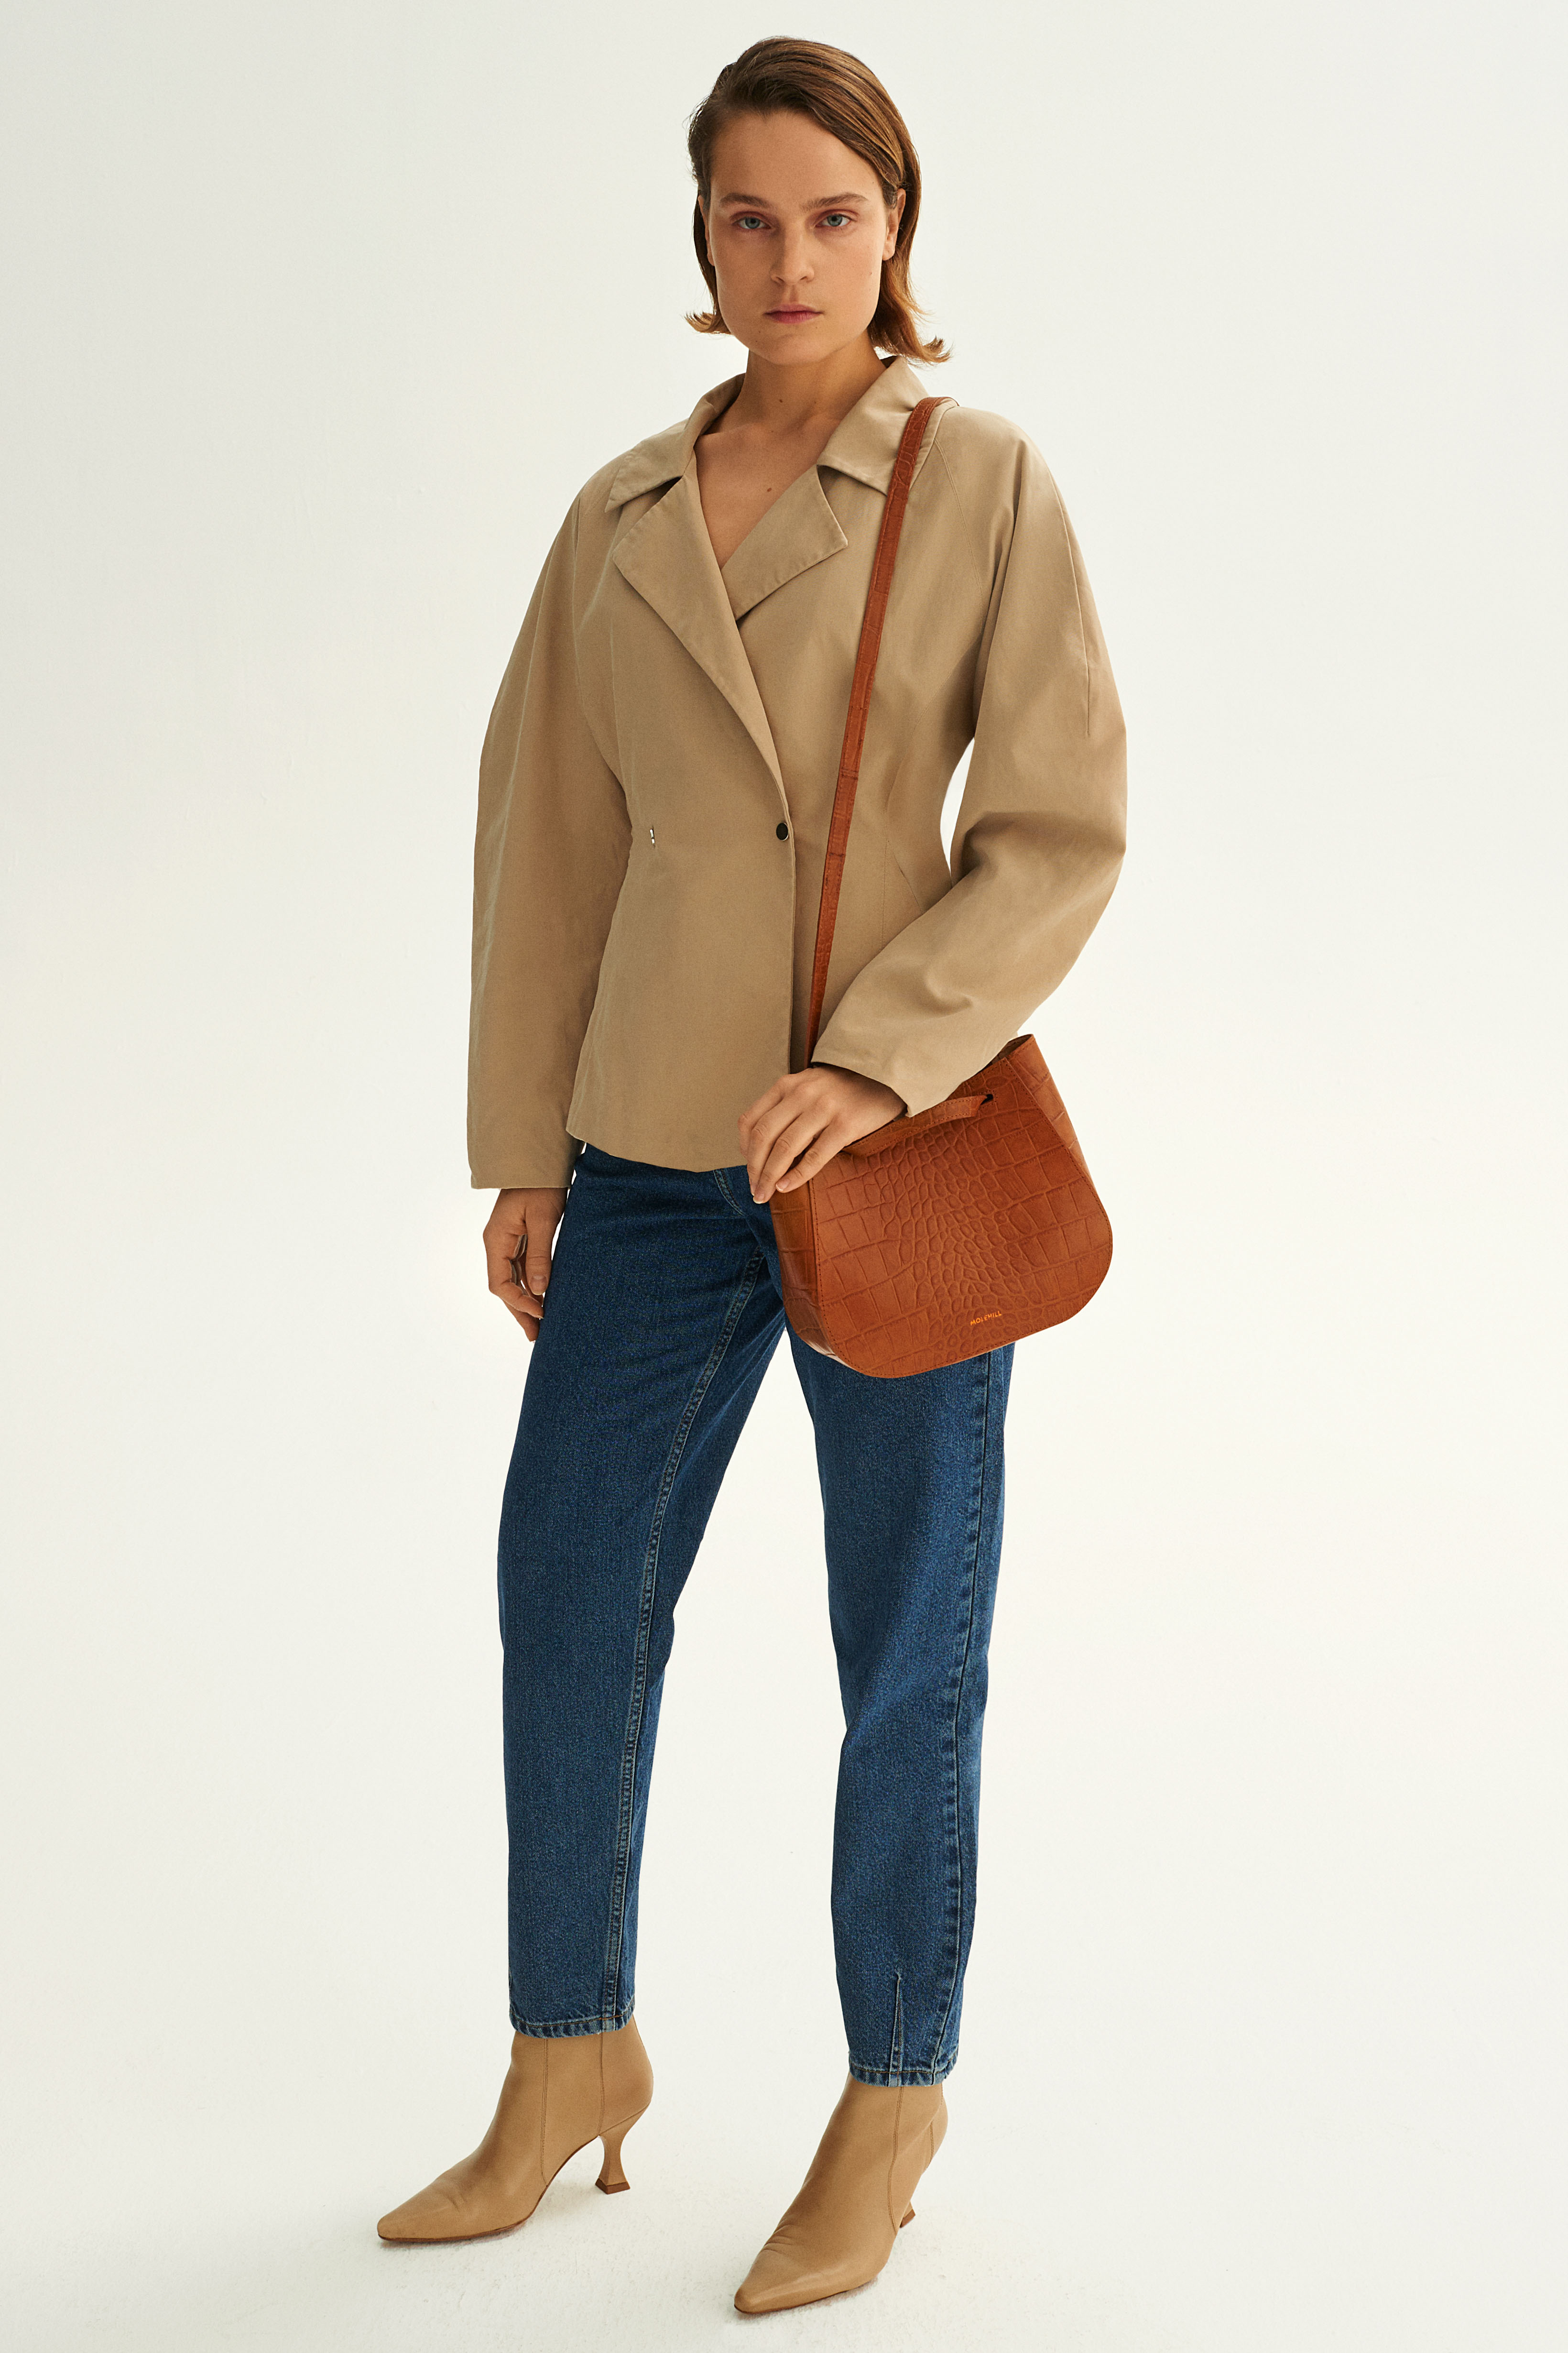 Molehill-Lookbook-Lesa-Small-Handbag-Croco-Honey-Special-Edition